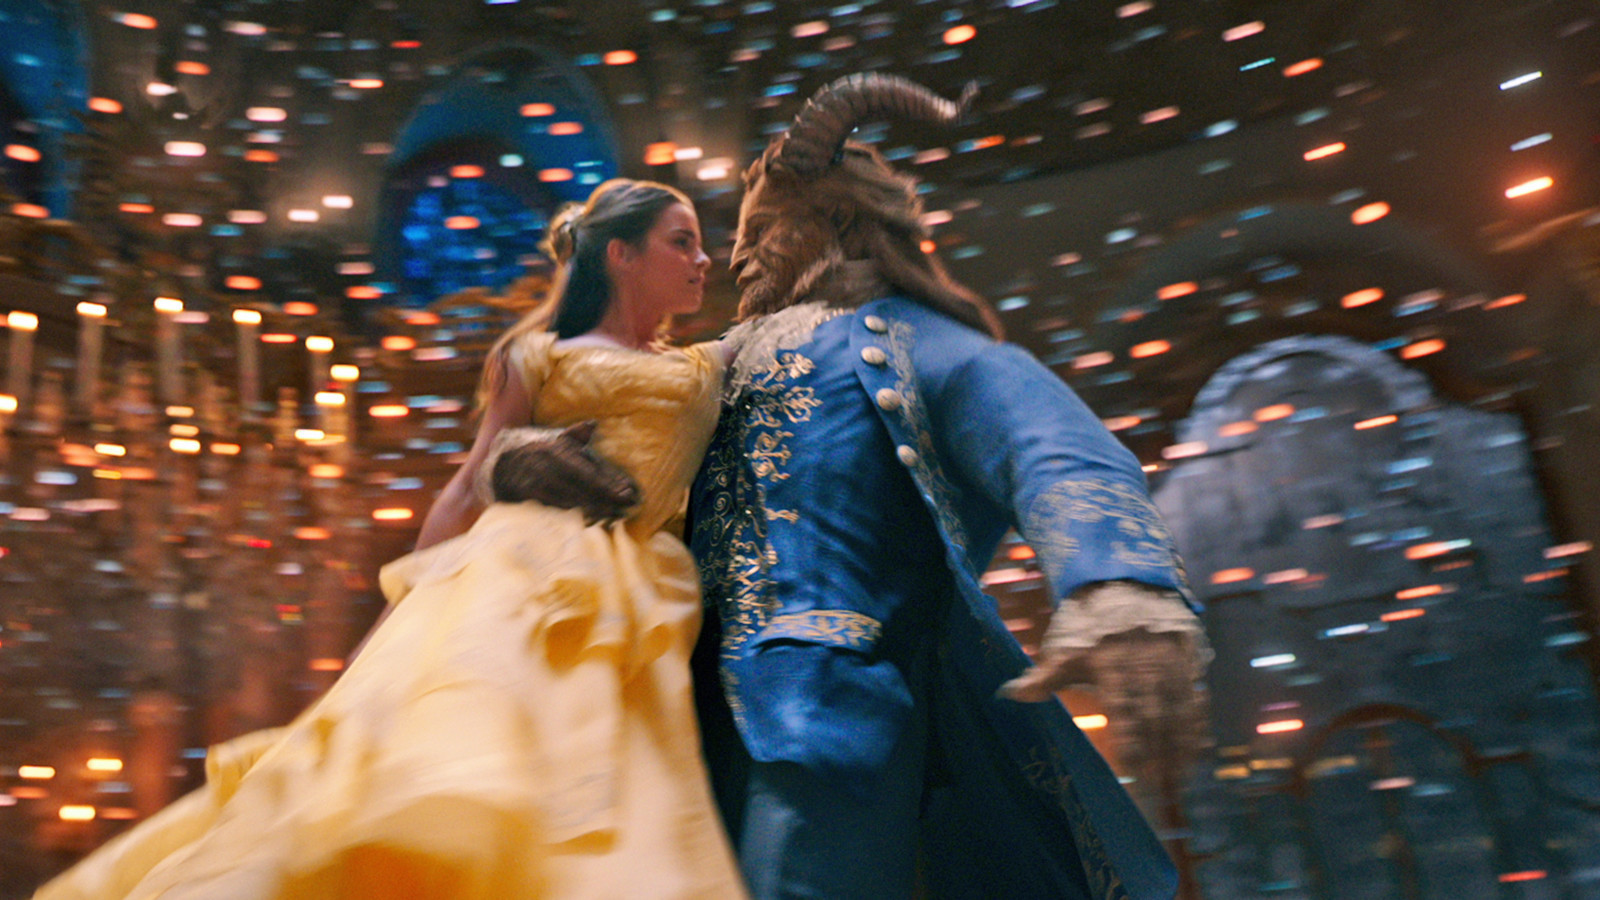 'beauty And The Beast' Remake Is A Gilded Monument To The Moreismore  Principle  La Times